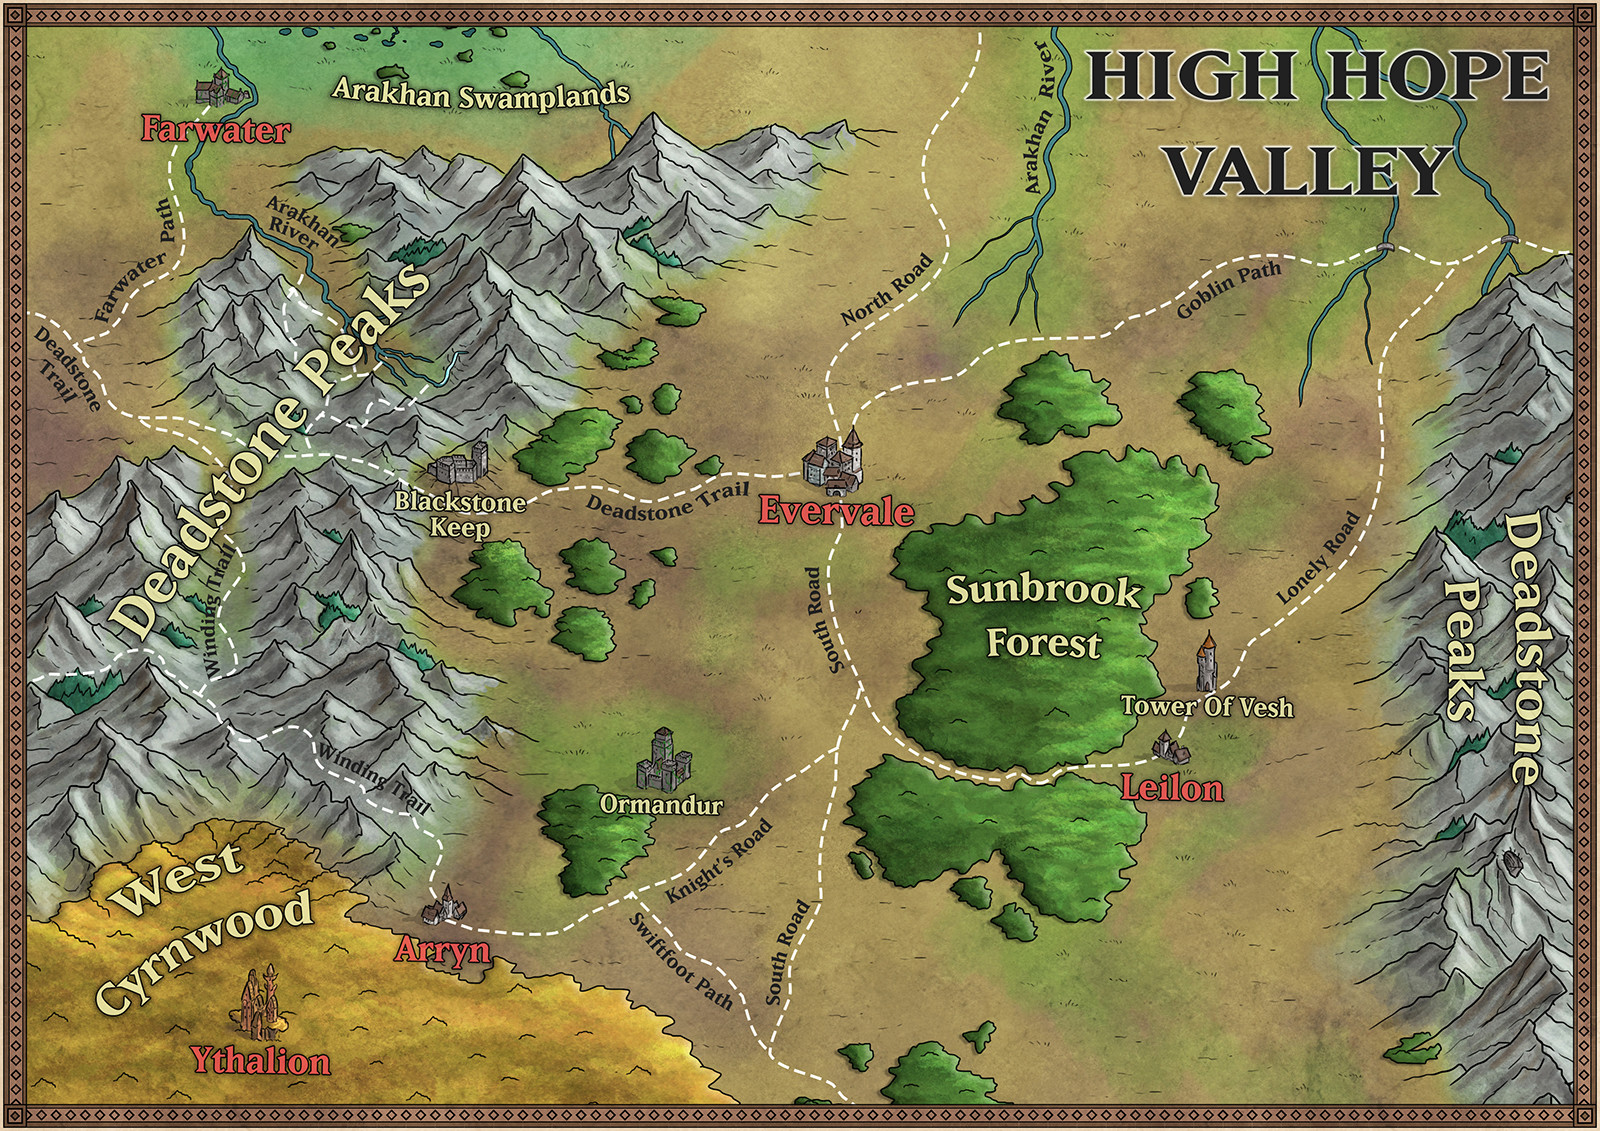 High Hope Valley